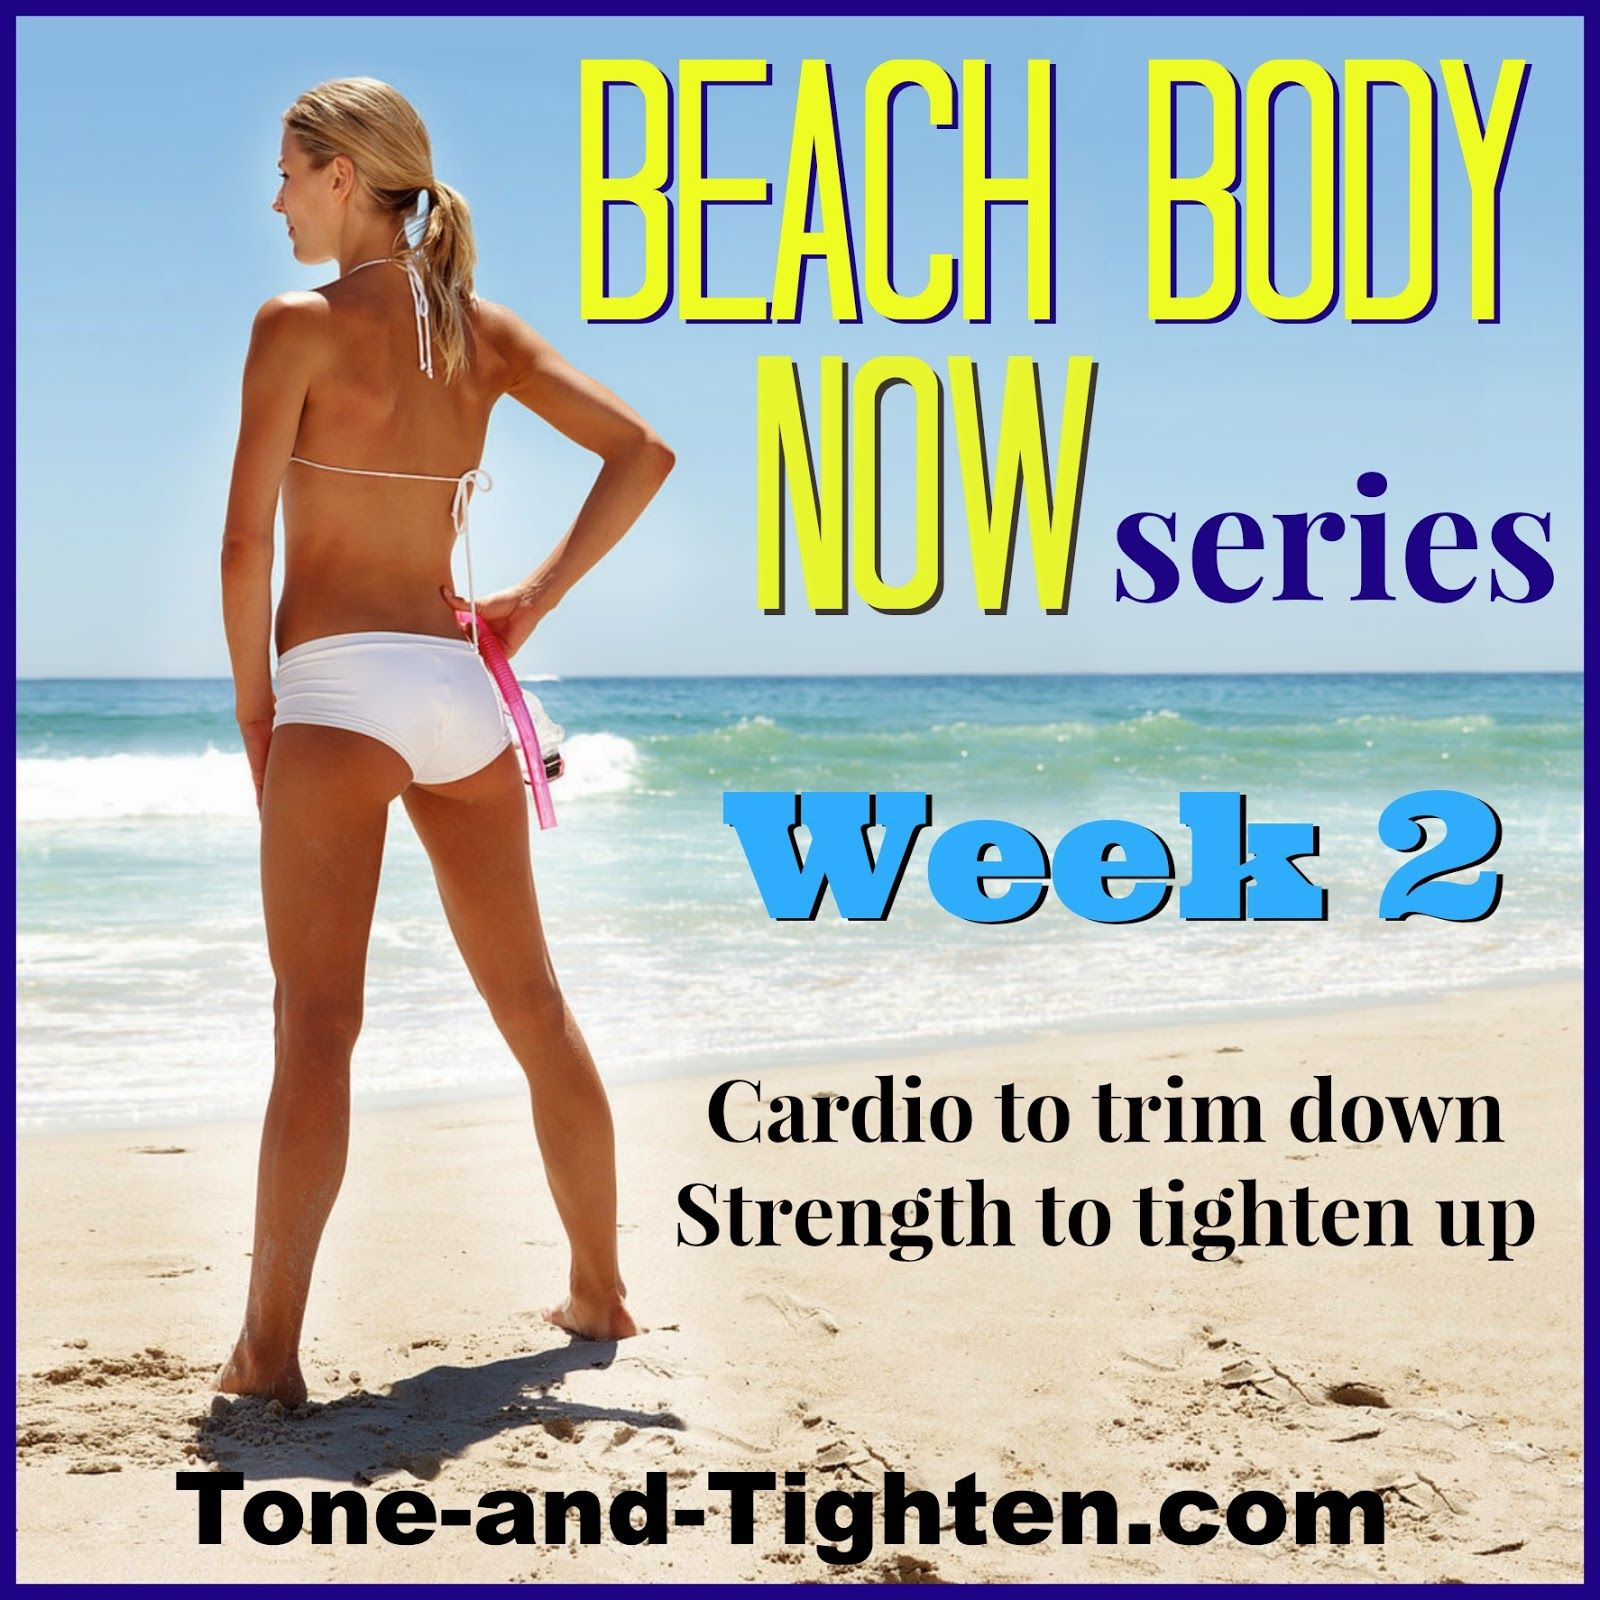 Get ready to hit the beach this summer looking amazing get your